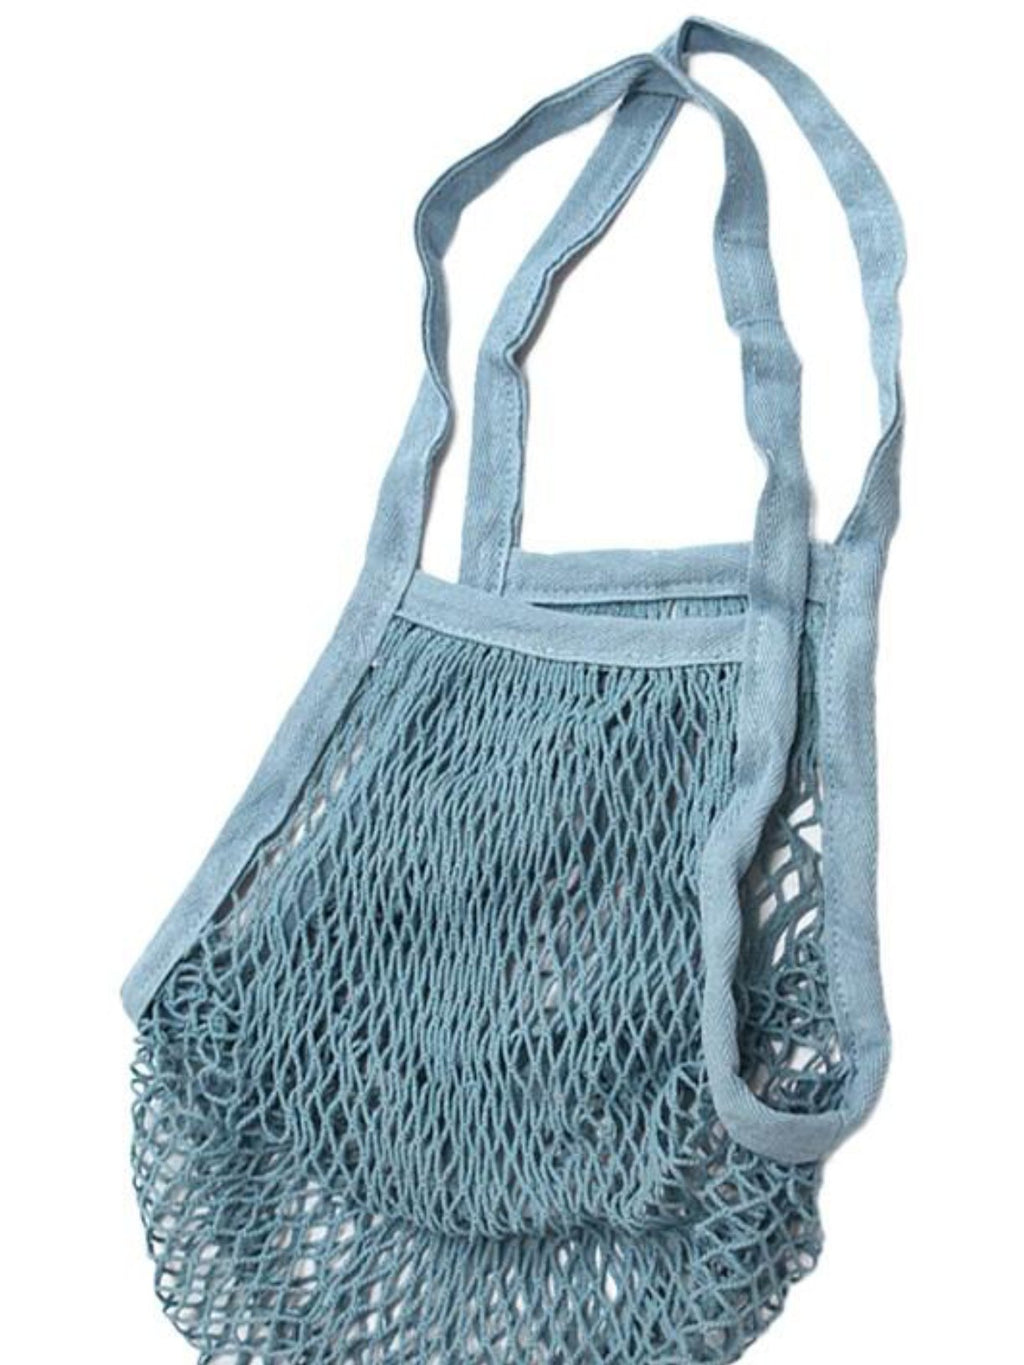 Blue French Style Net Market Bag